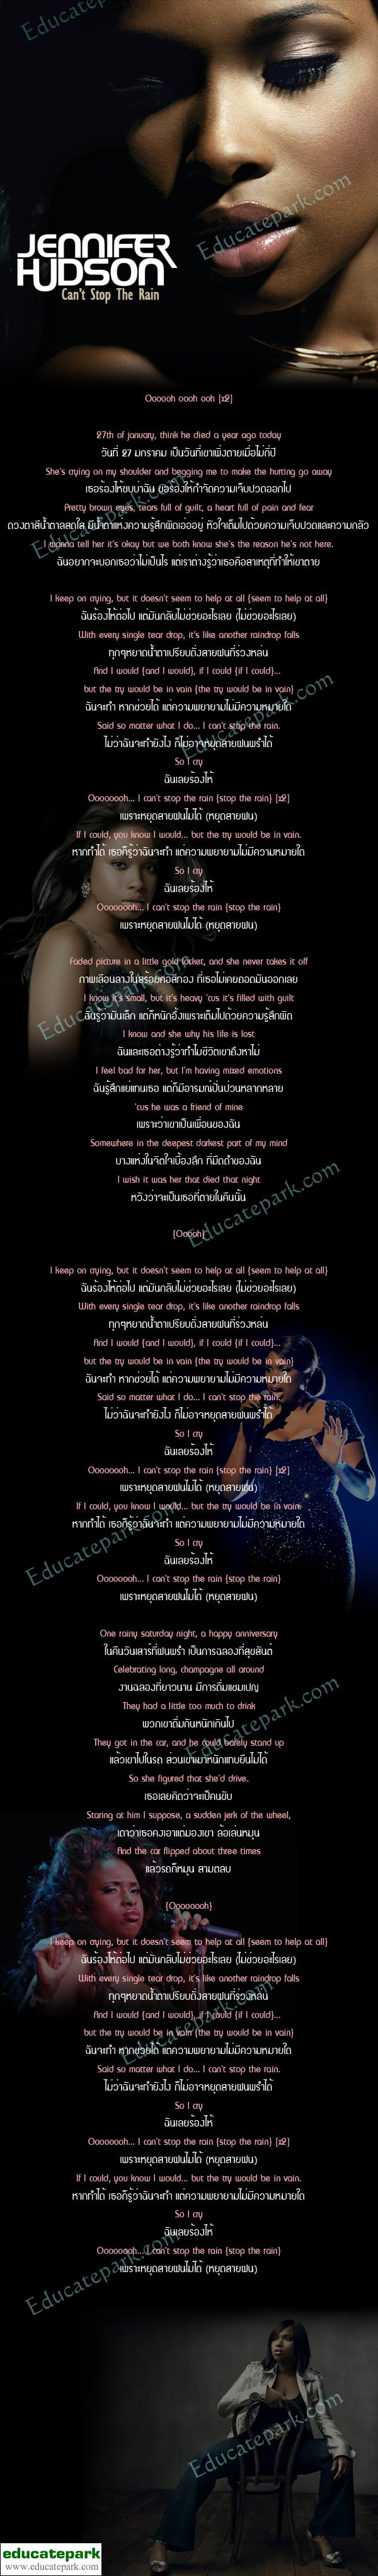 แปลเพลง Can't Stop The Rain - Jennifer Hudson